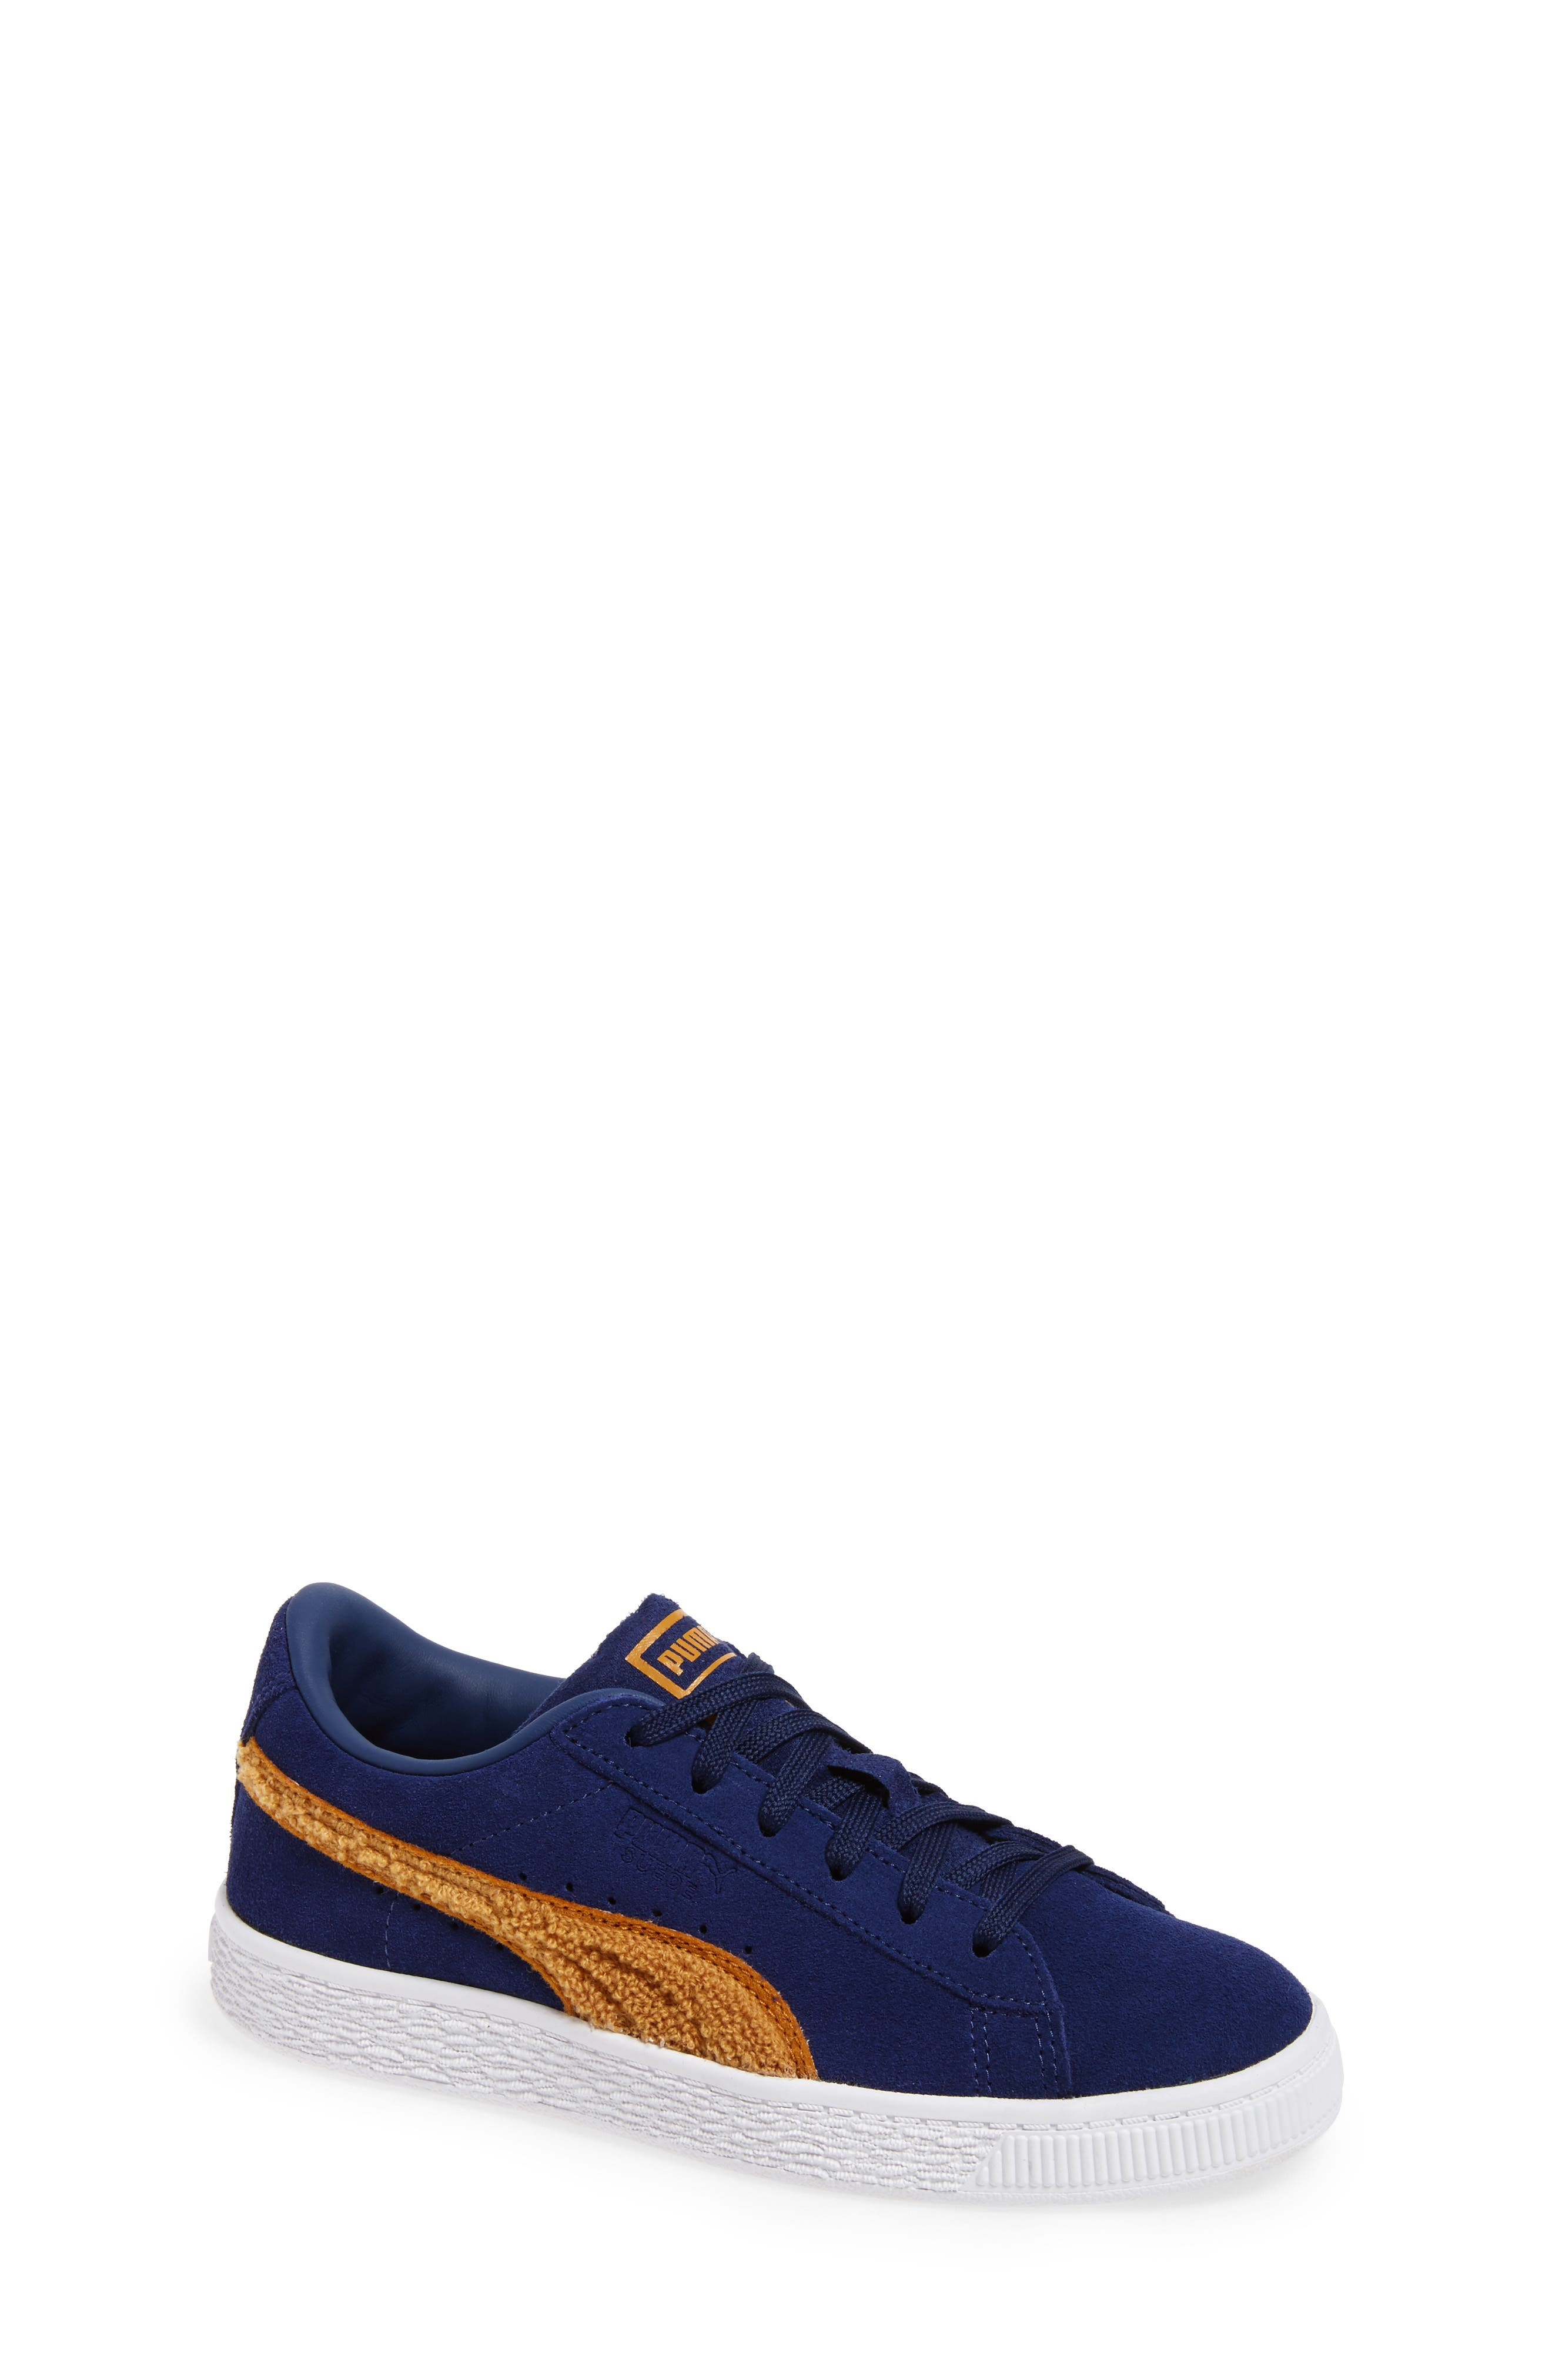 PUMA Classic Terry Sneaker (Toddler, Little Kid & Big Kid)